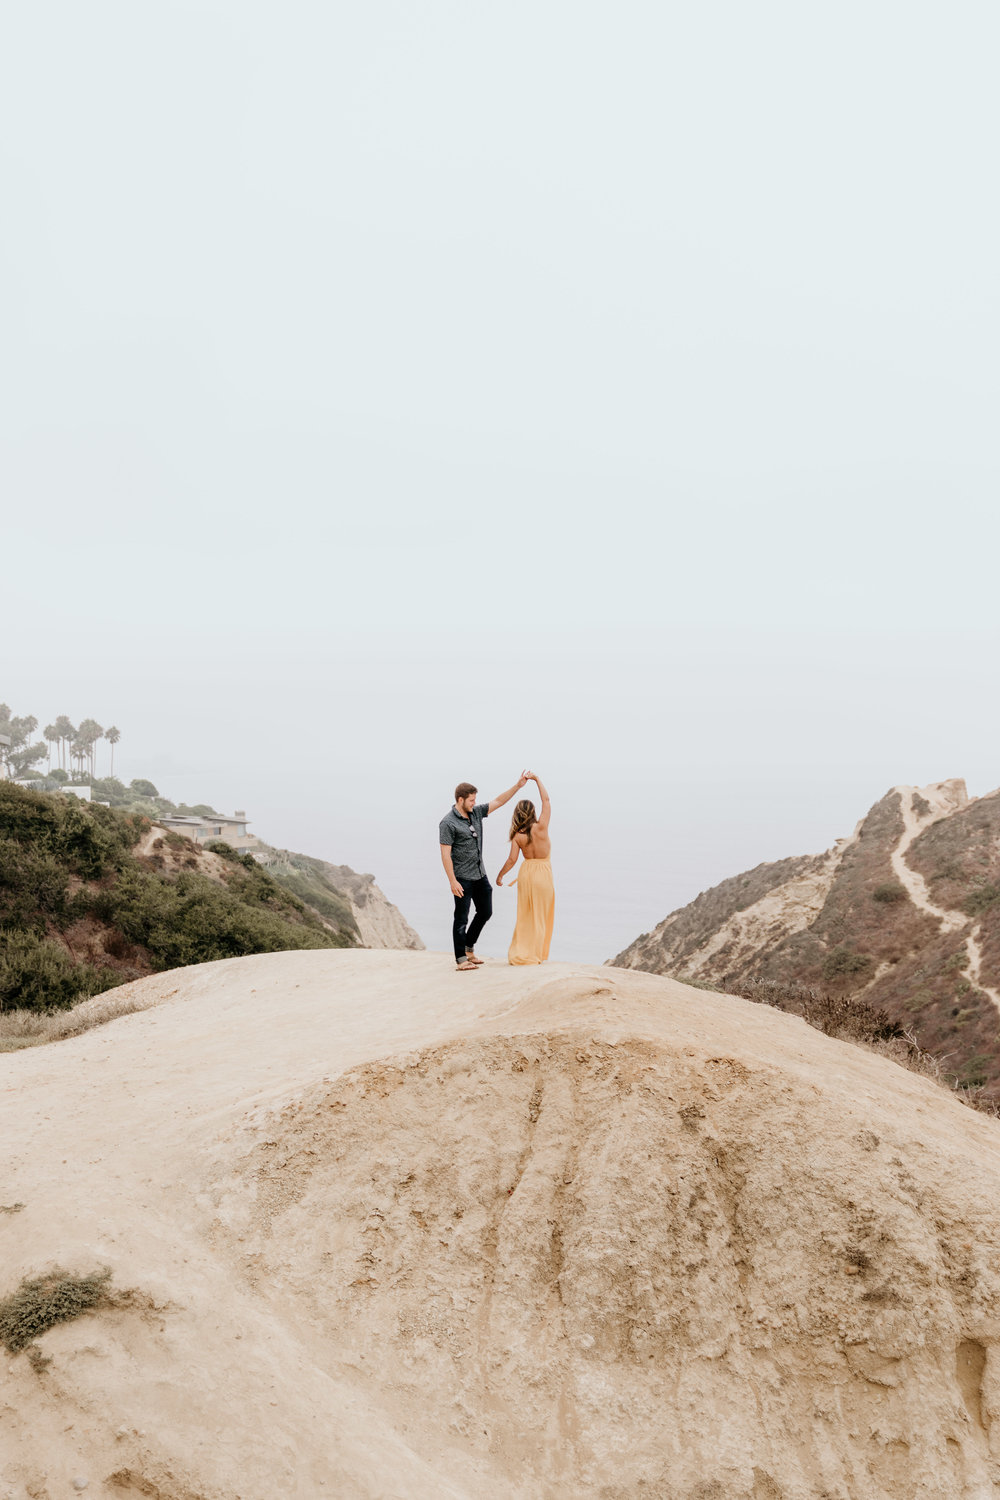 La Jolla Ho Chi Minh Trail San Diego Couples Photography